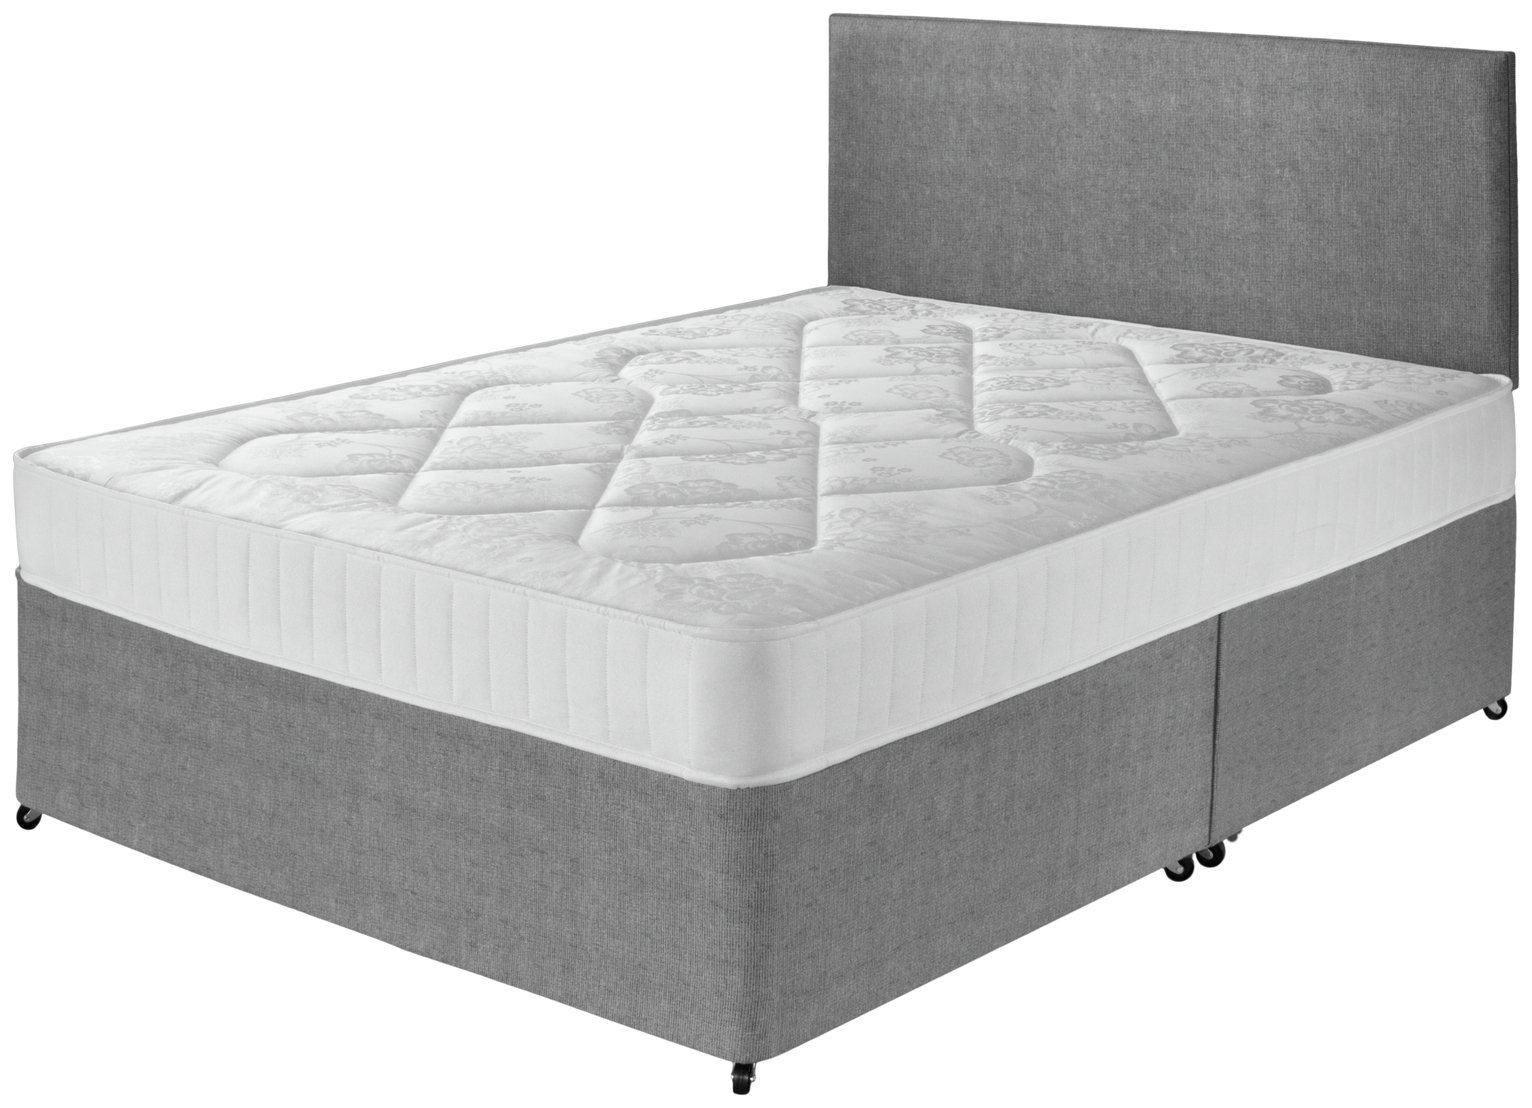 Airspring - Elmdon Comfort Small - Double - Divan Bed